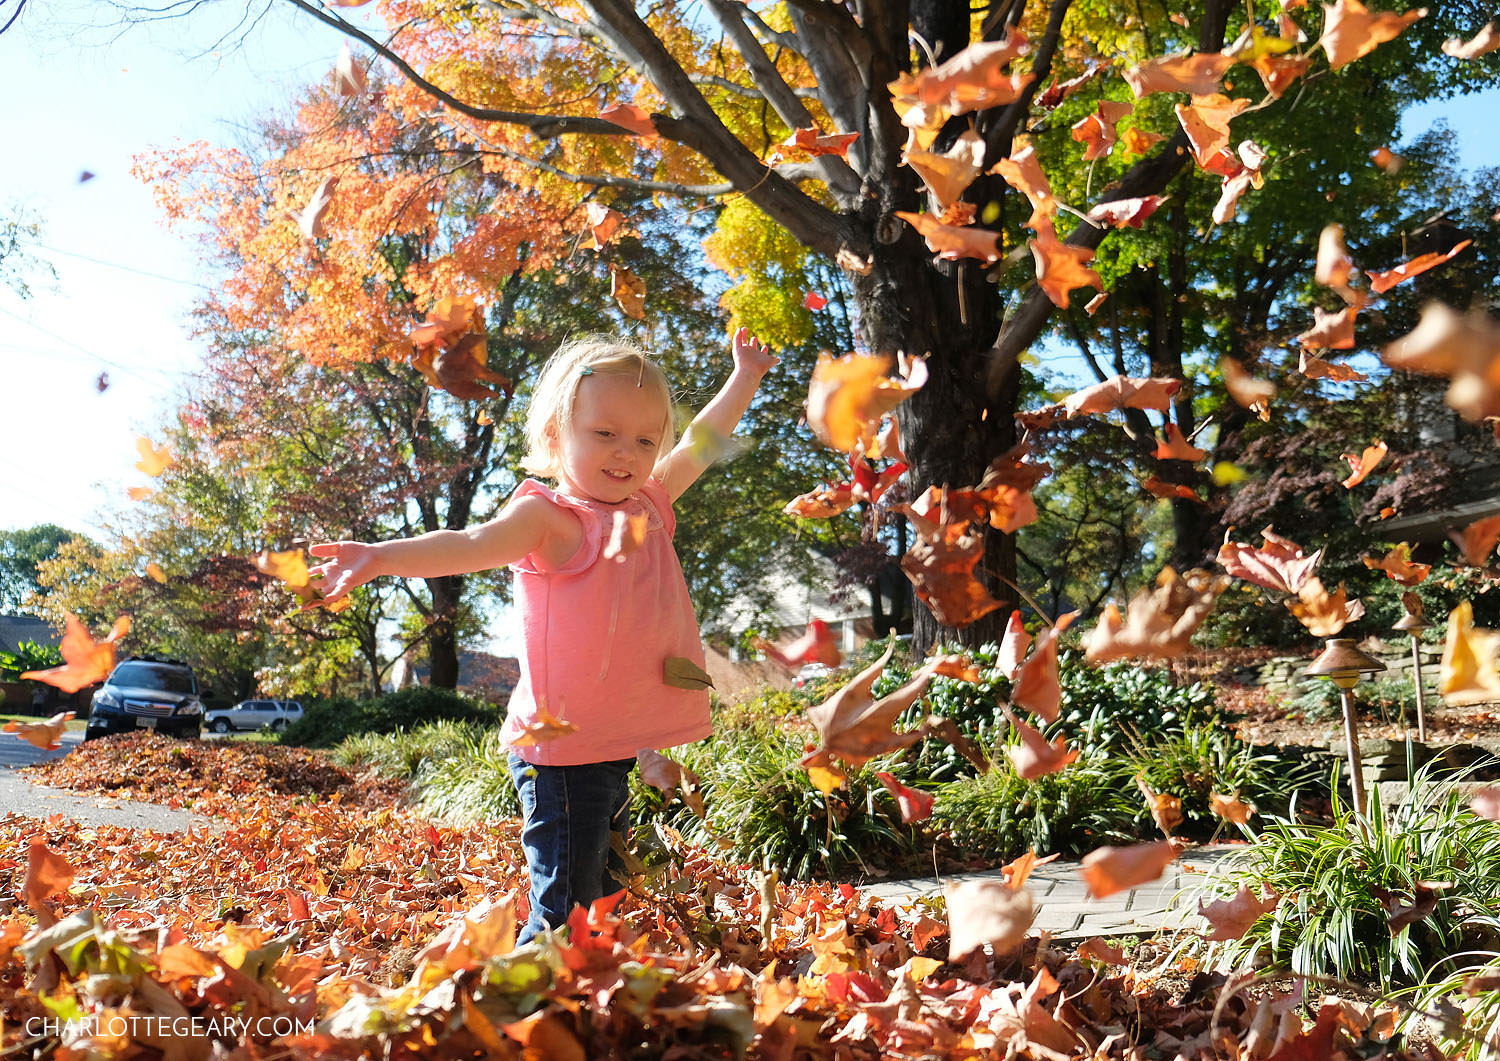 Childhood leaf magic in Annandale, Virginia